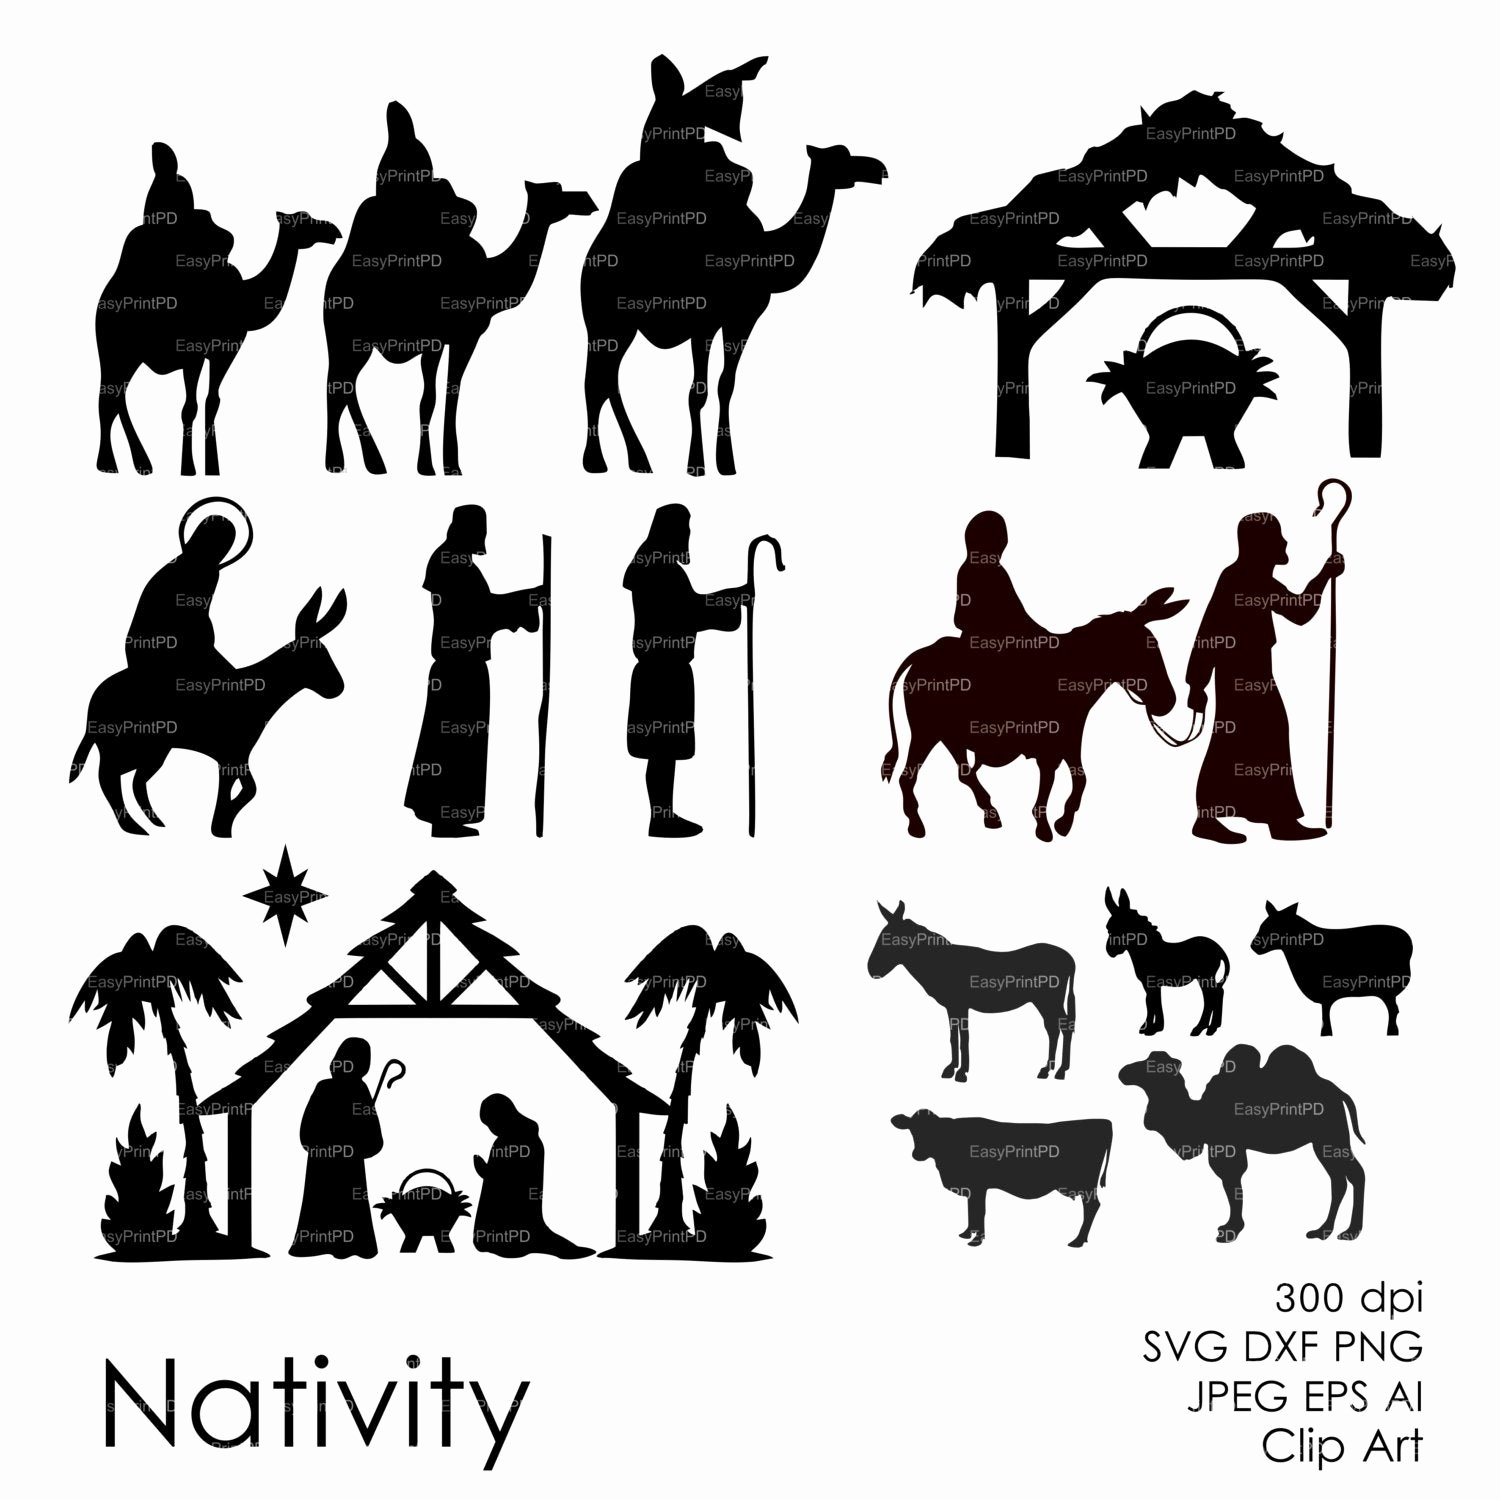 Nativity Silhouette Patterns Download Elegant Nativity Christ Silhouette Overlays Vector Digital Clipart